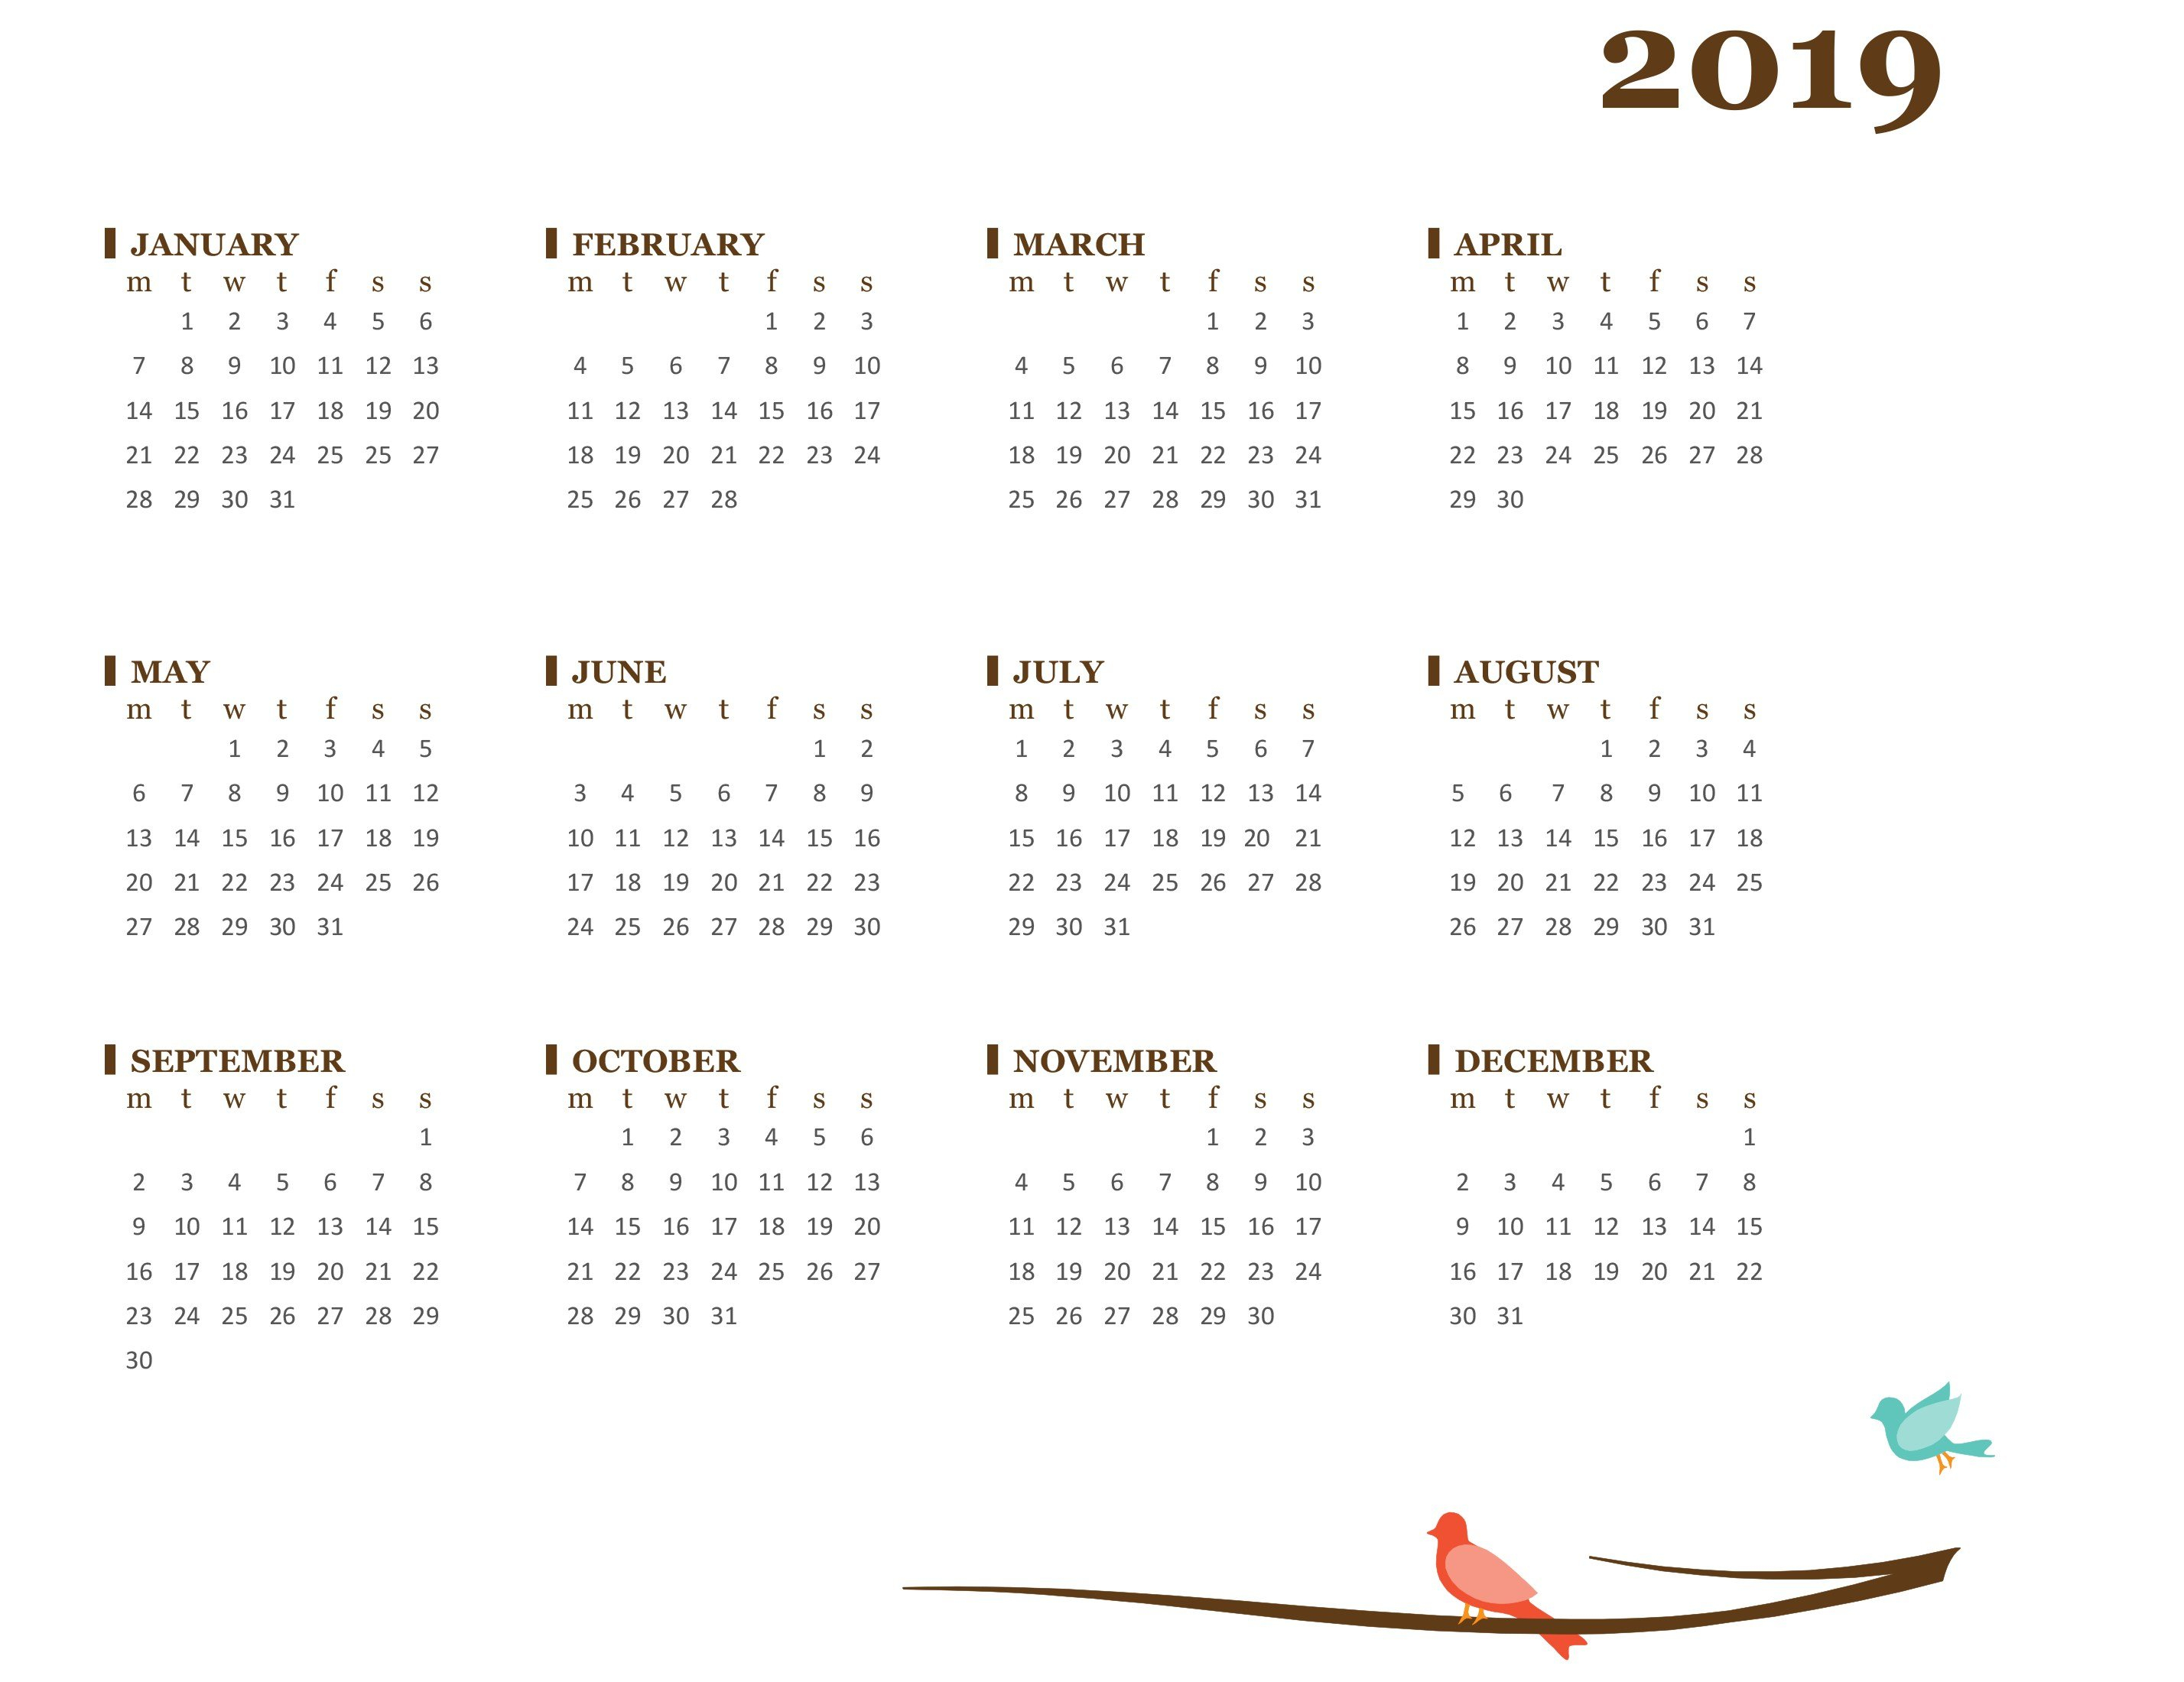 2019 Yearly Calendar (Mon-Sun) Calendar 2019 Full Year